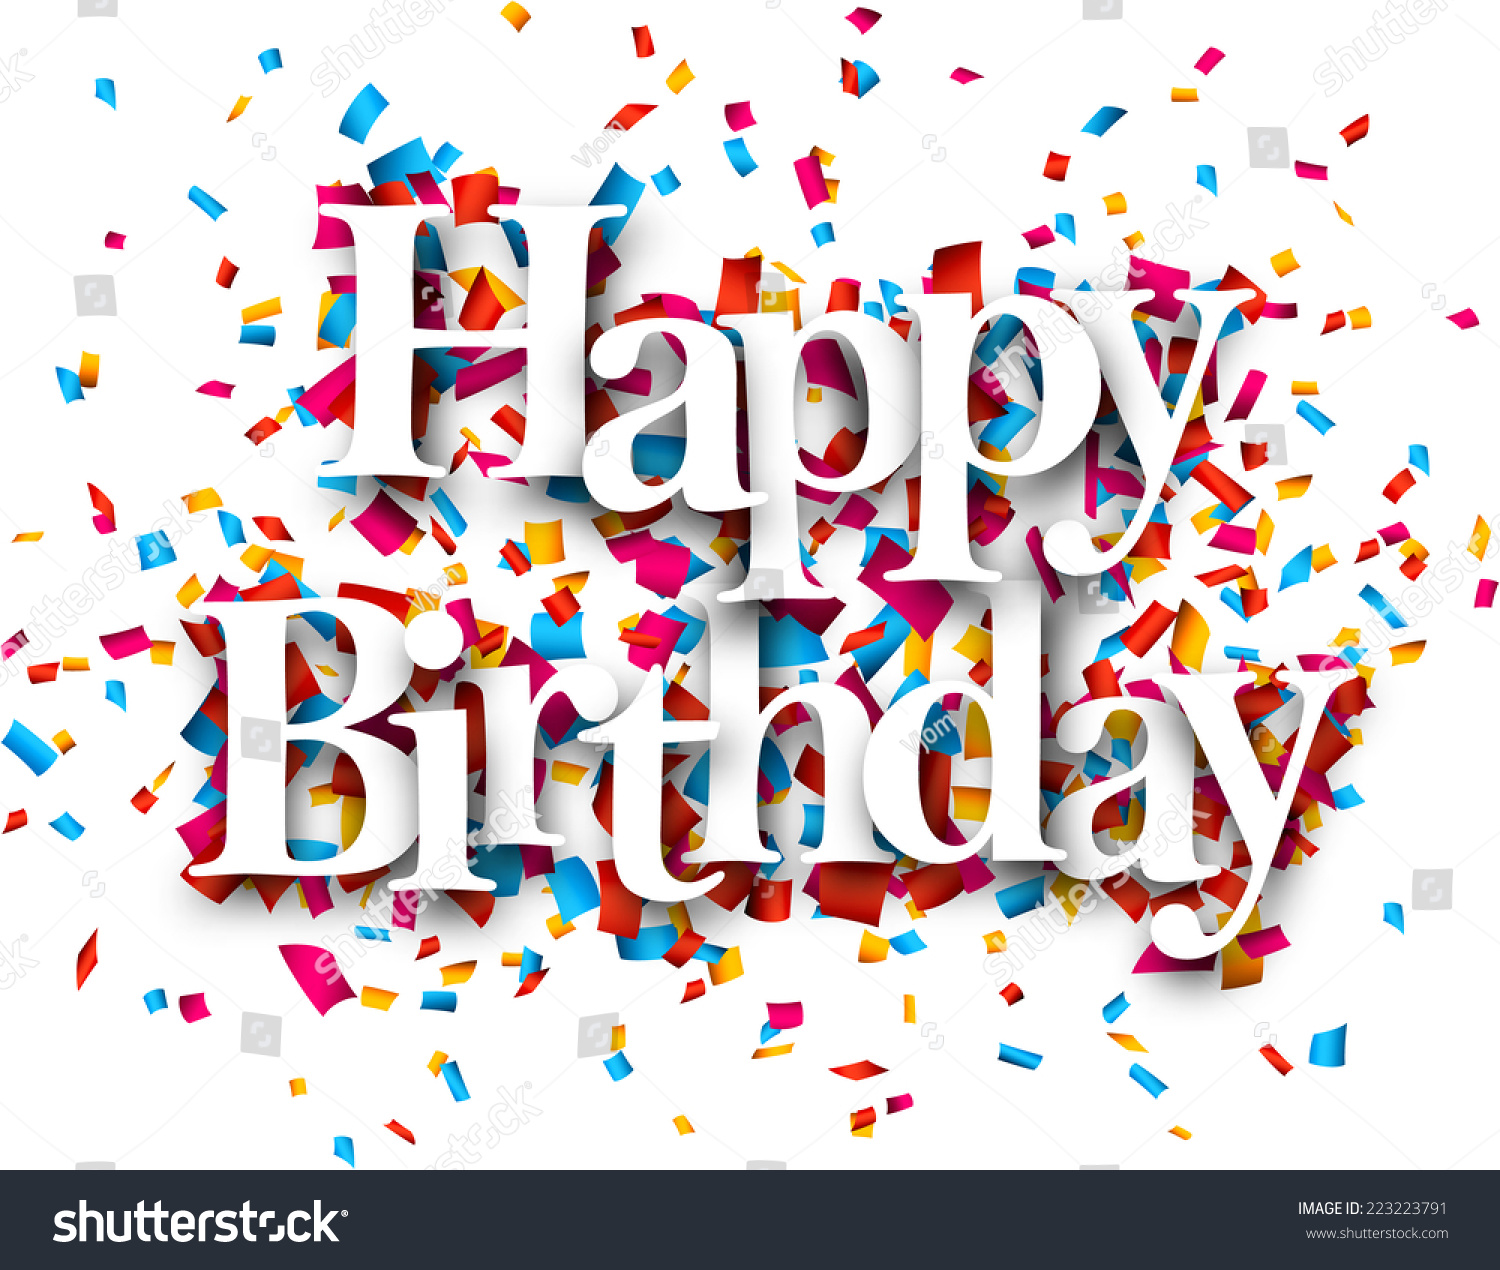 a picture of a happy birthday sign ; stock-vector-white-happy-birthday-sign-over-confetti-background-vector-holiday-illustration-223223791